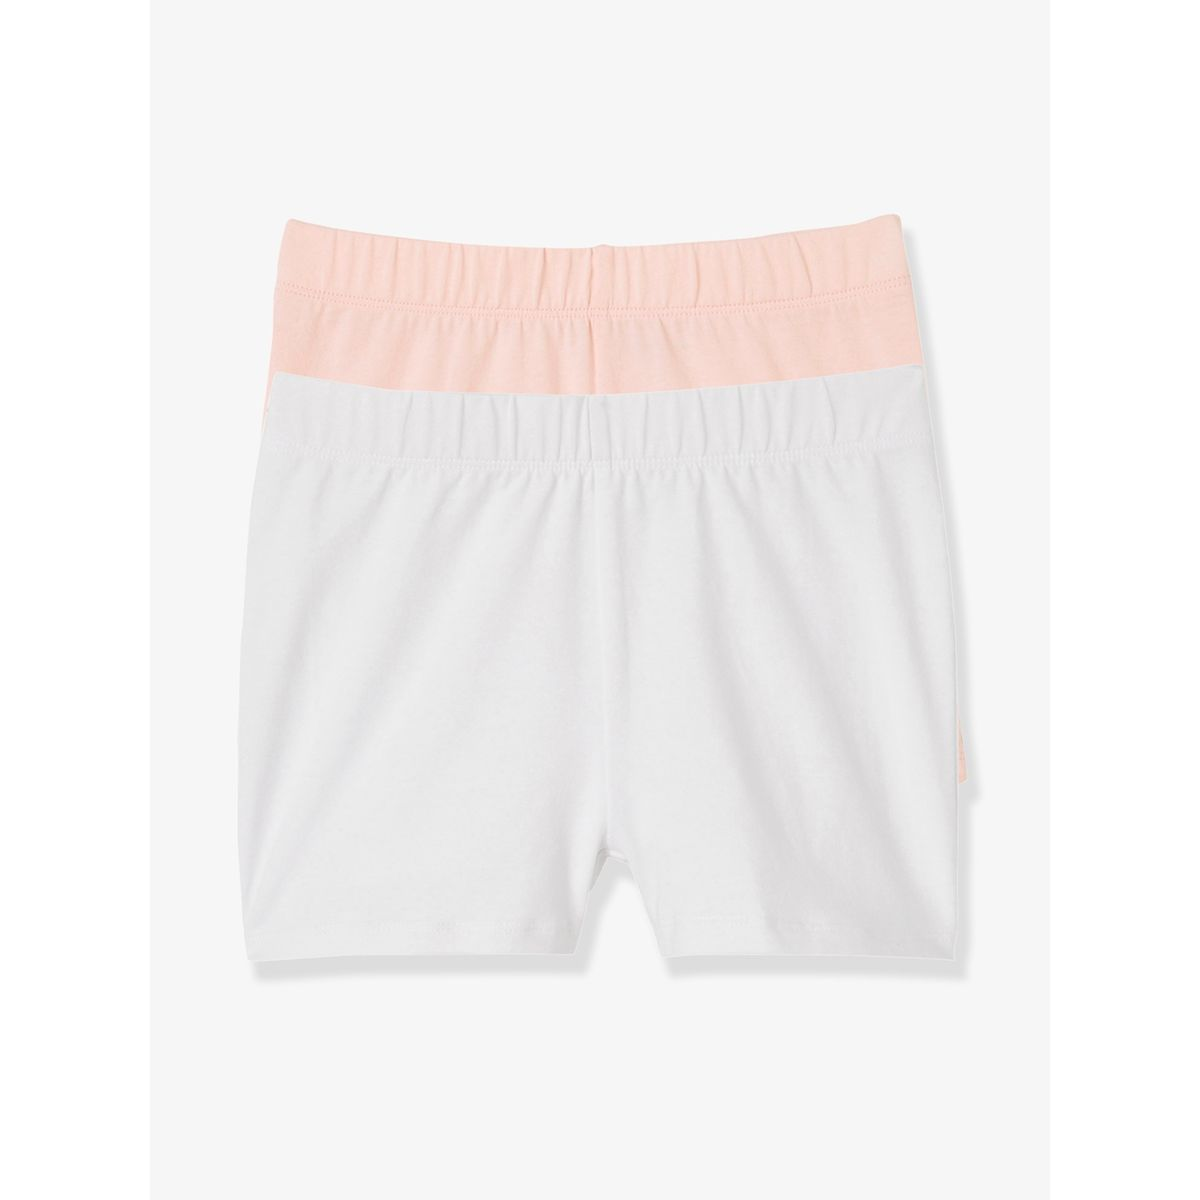 Lot de 2 shorties fille | Shorty, Âgés de